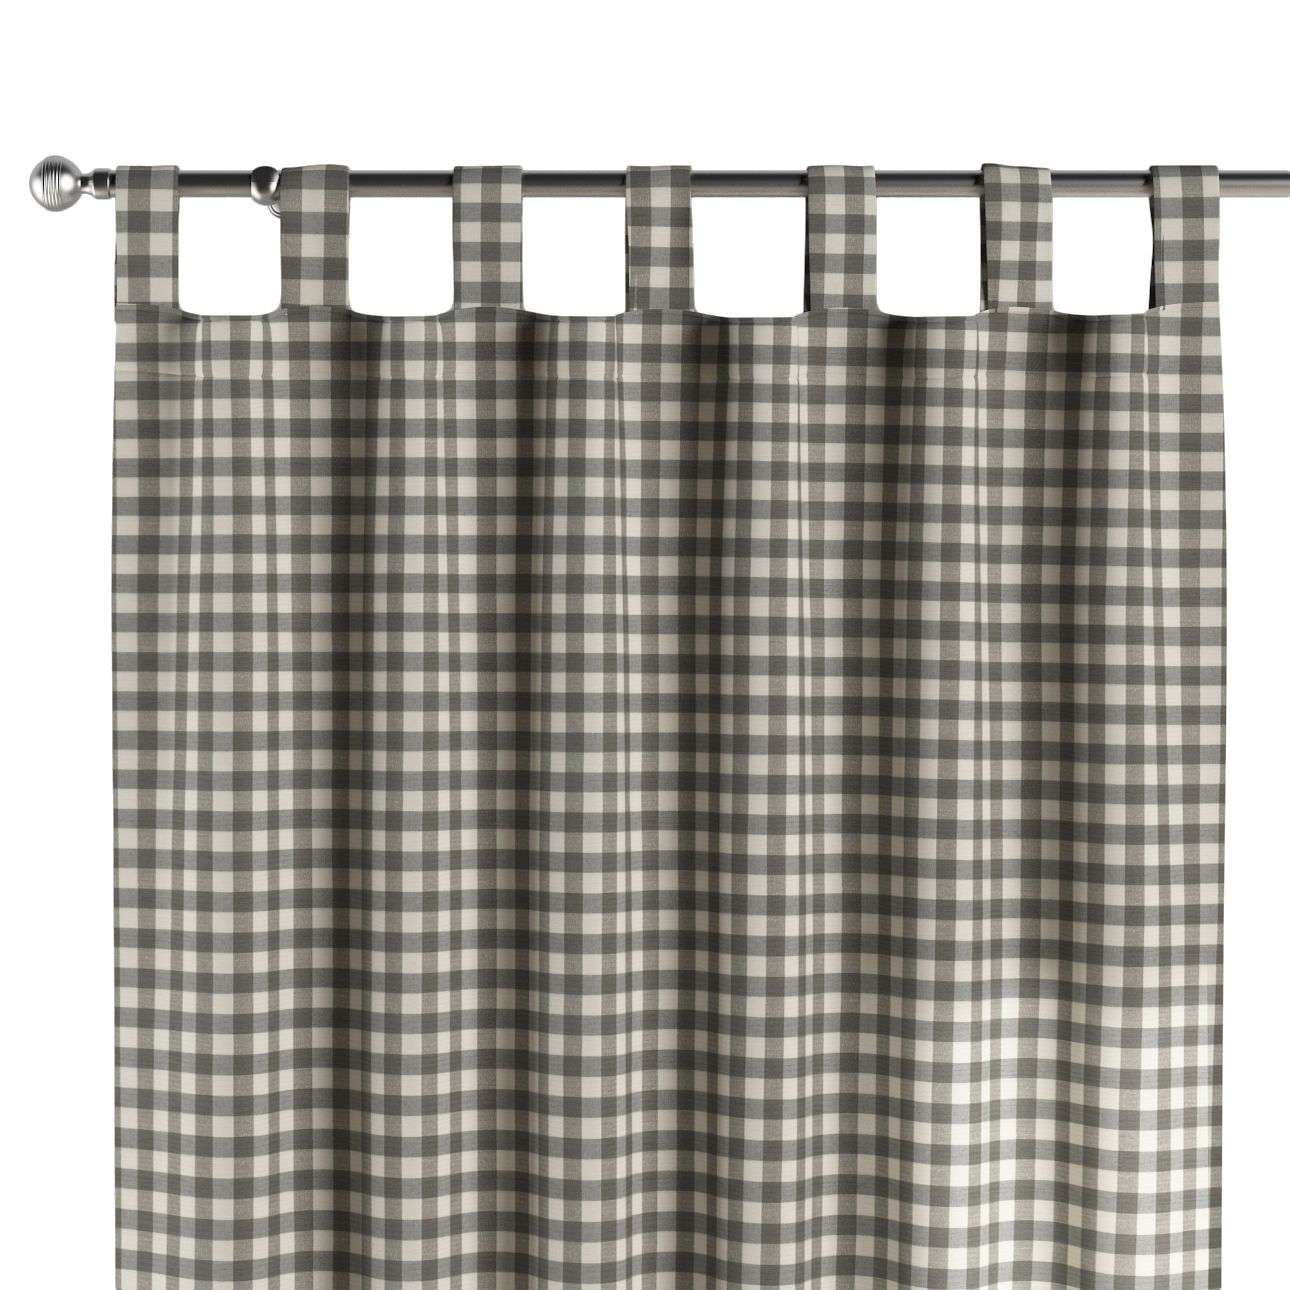 Tab top curtains 130 × 260 cm (51 × 102 inch) in collection Quadro, fabric: 136-11